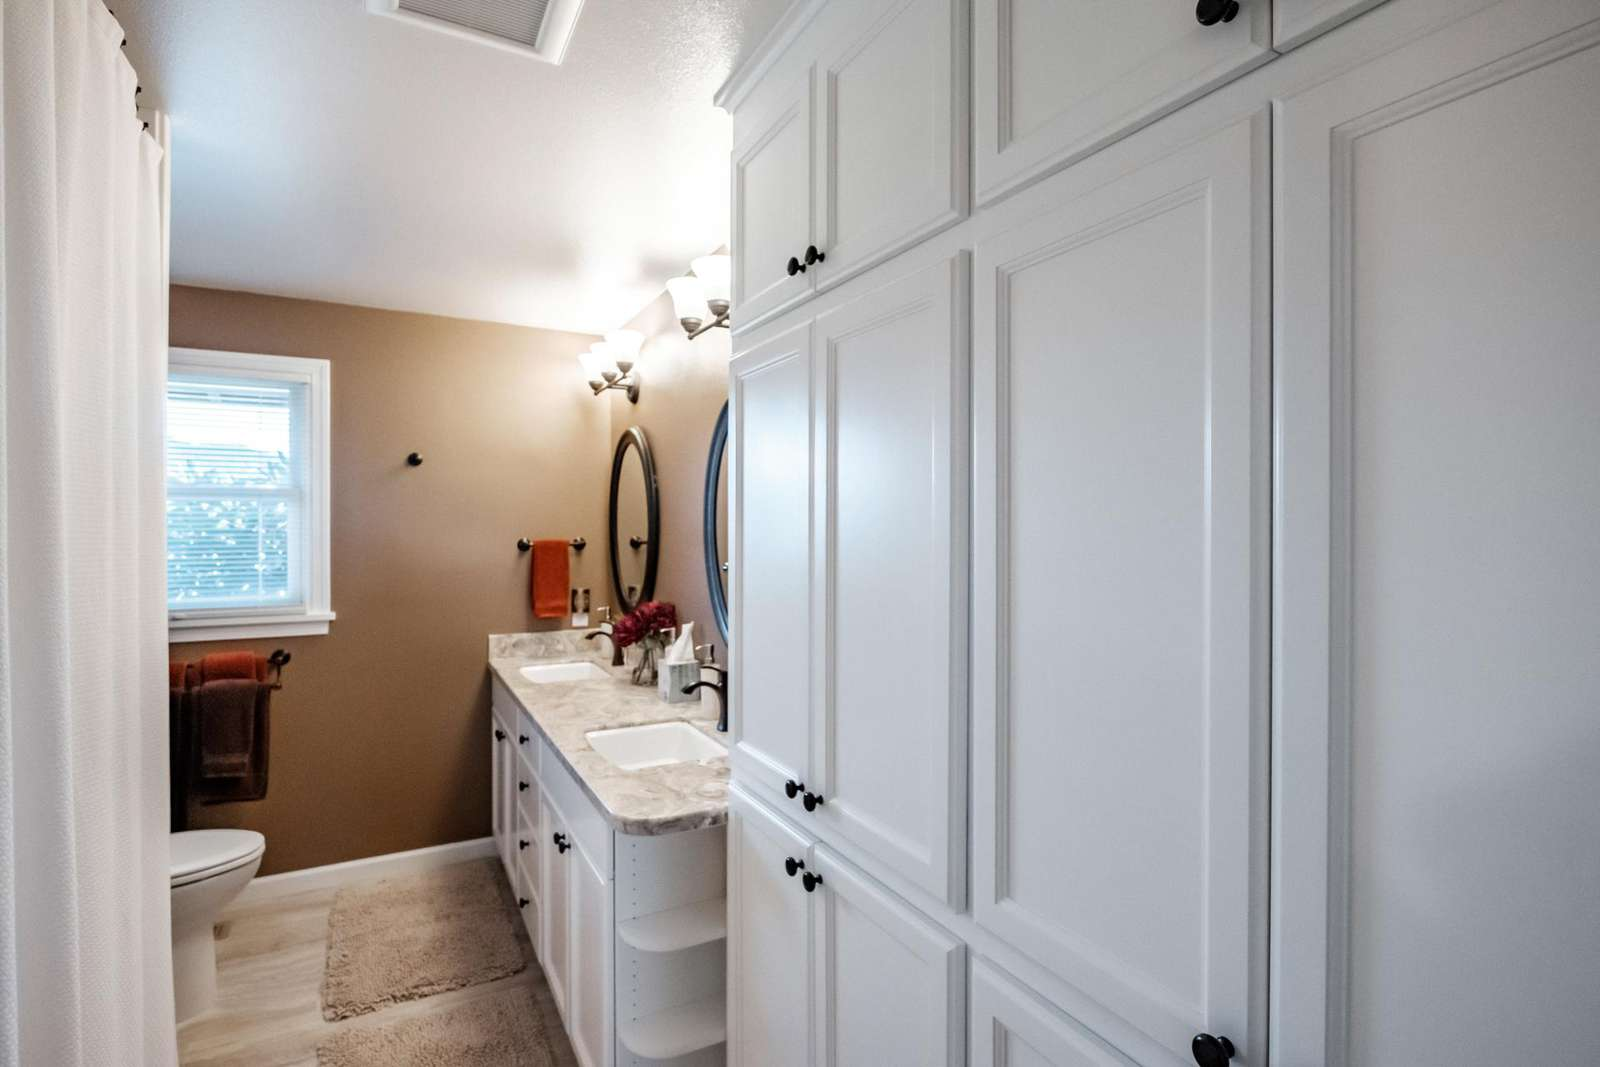 Bathroom storage for towels and guest items